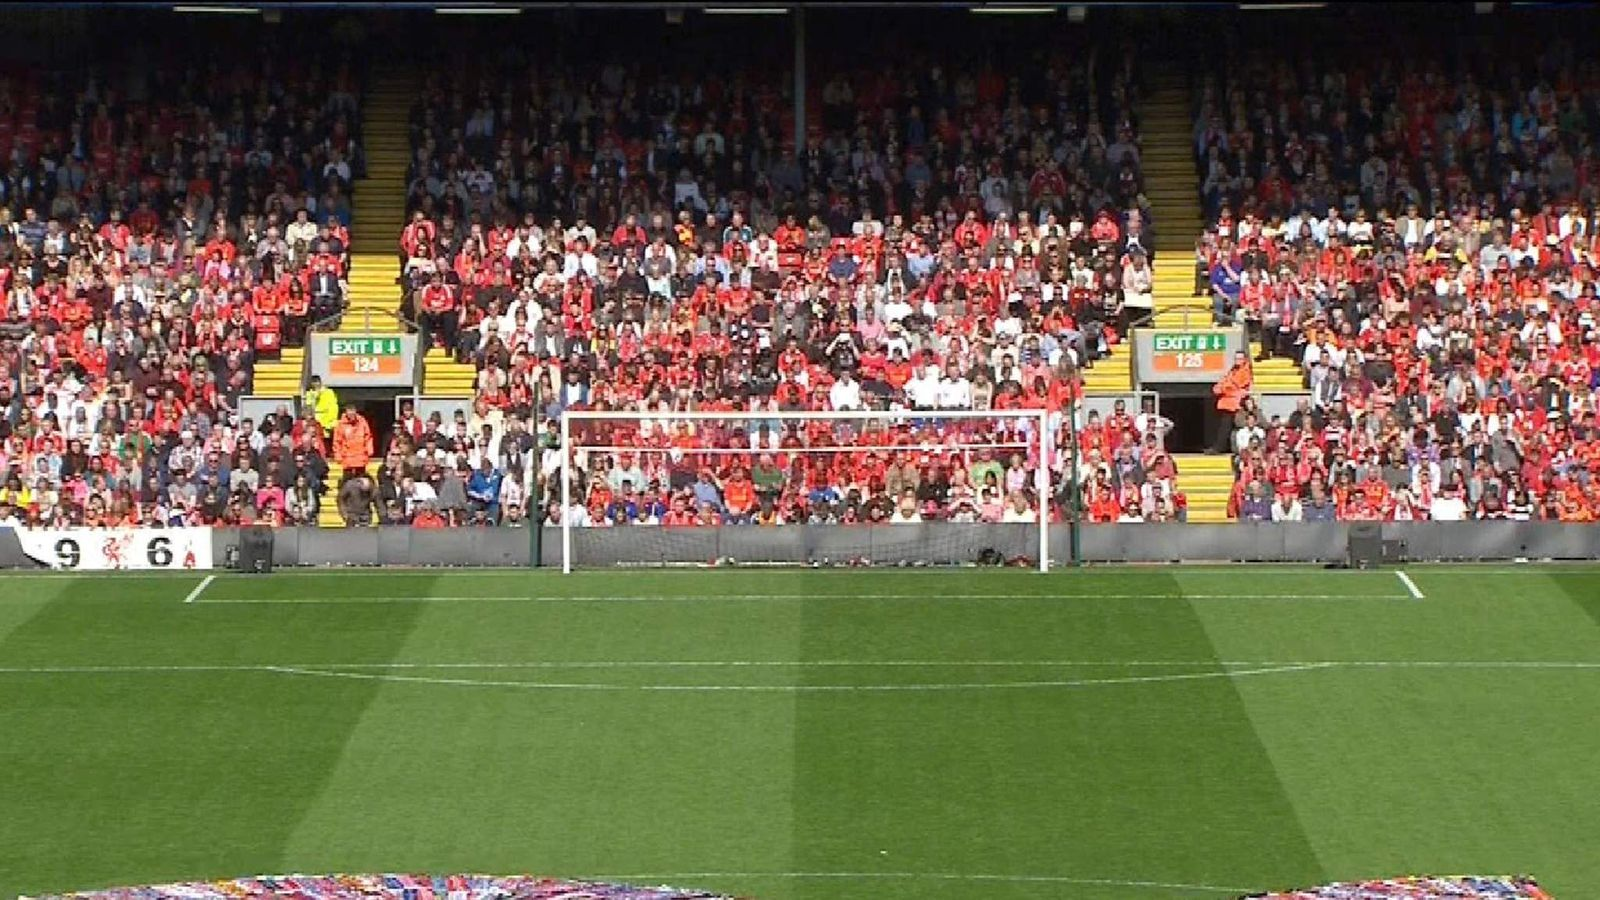 The number 96 made from flags in the centre of Anfield's pitch